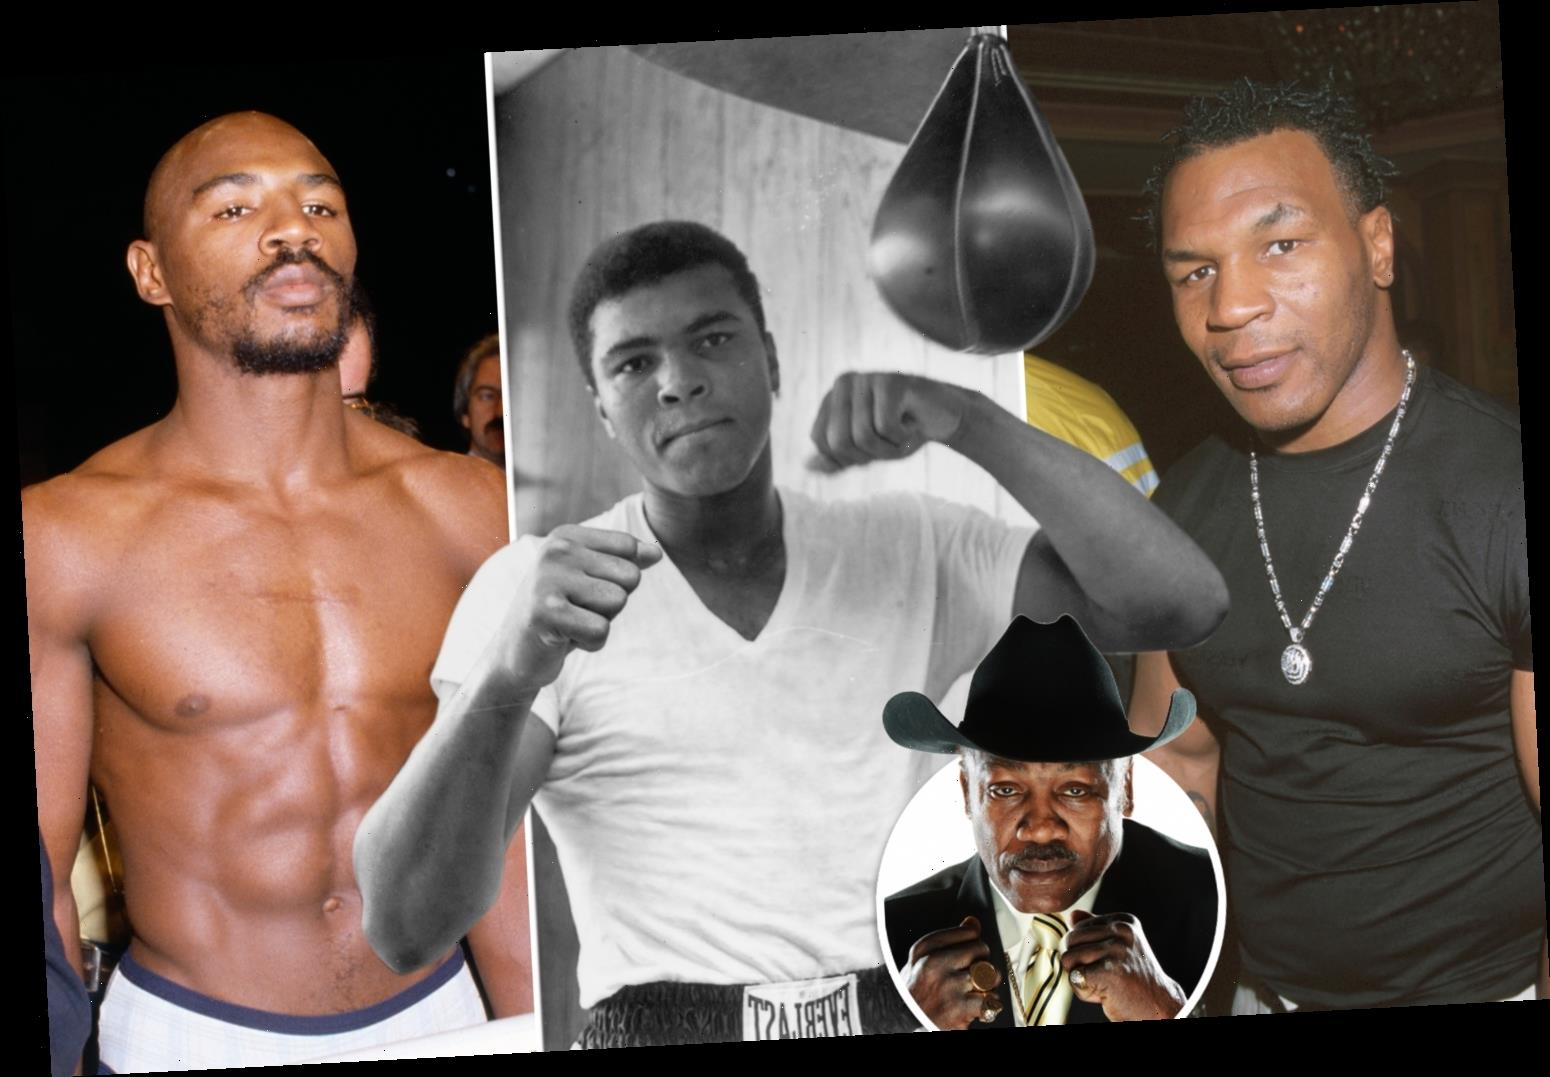 Greatest nicknames in boxing including 'Macho' Camacho, 'The Nigerian Nightmare' and Owen 'What the Heck' Beck